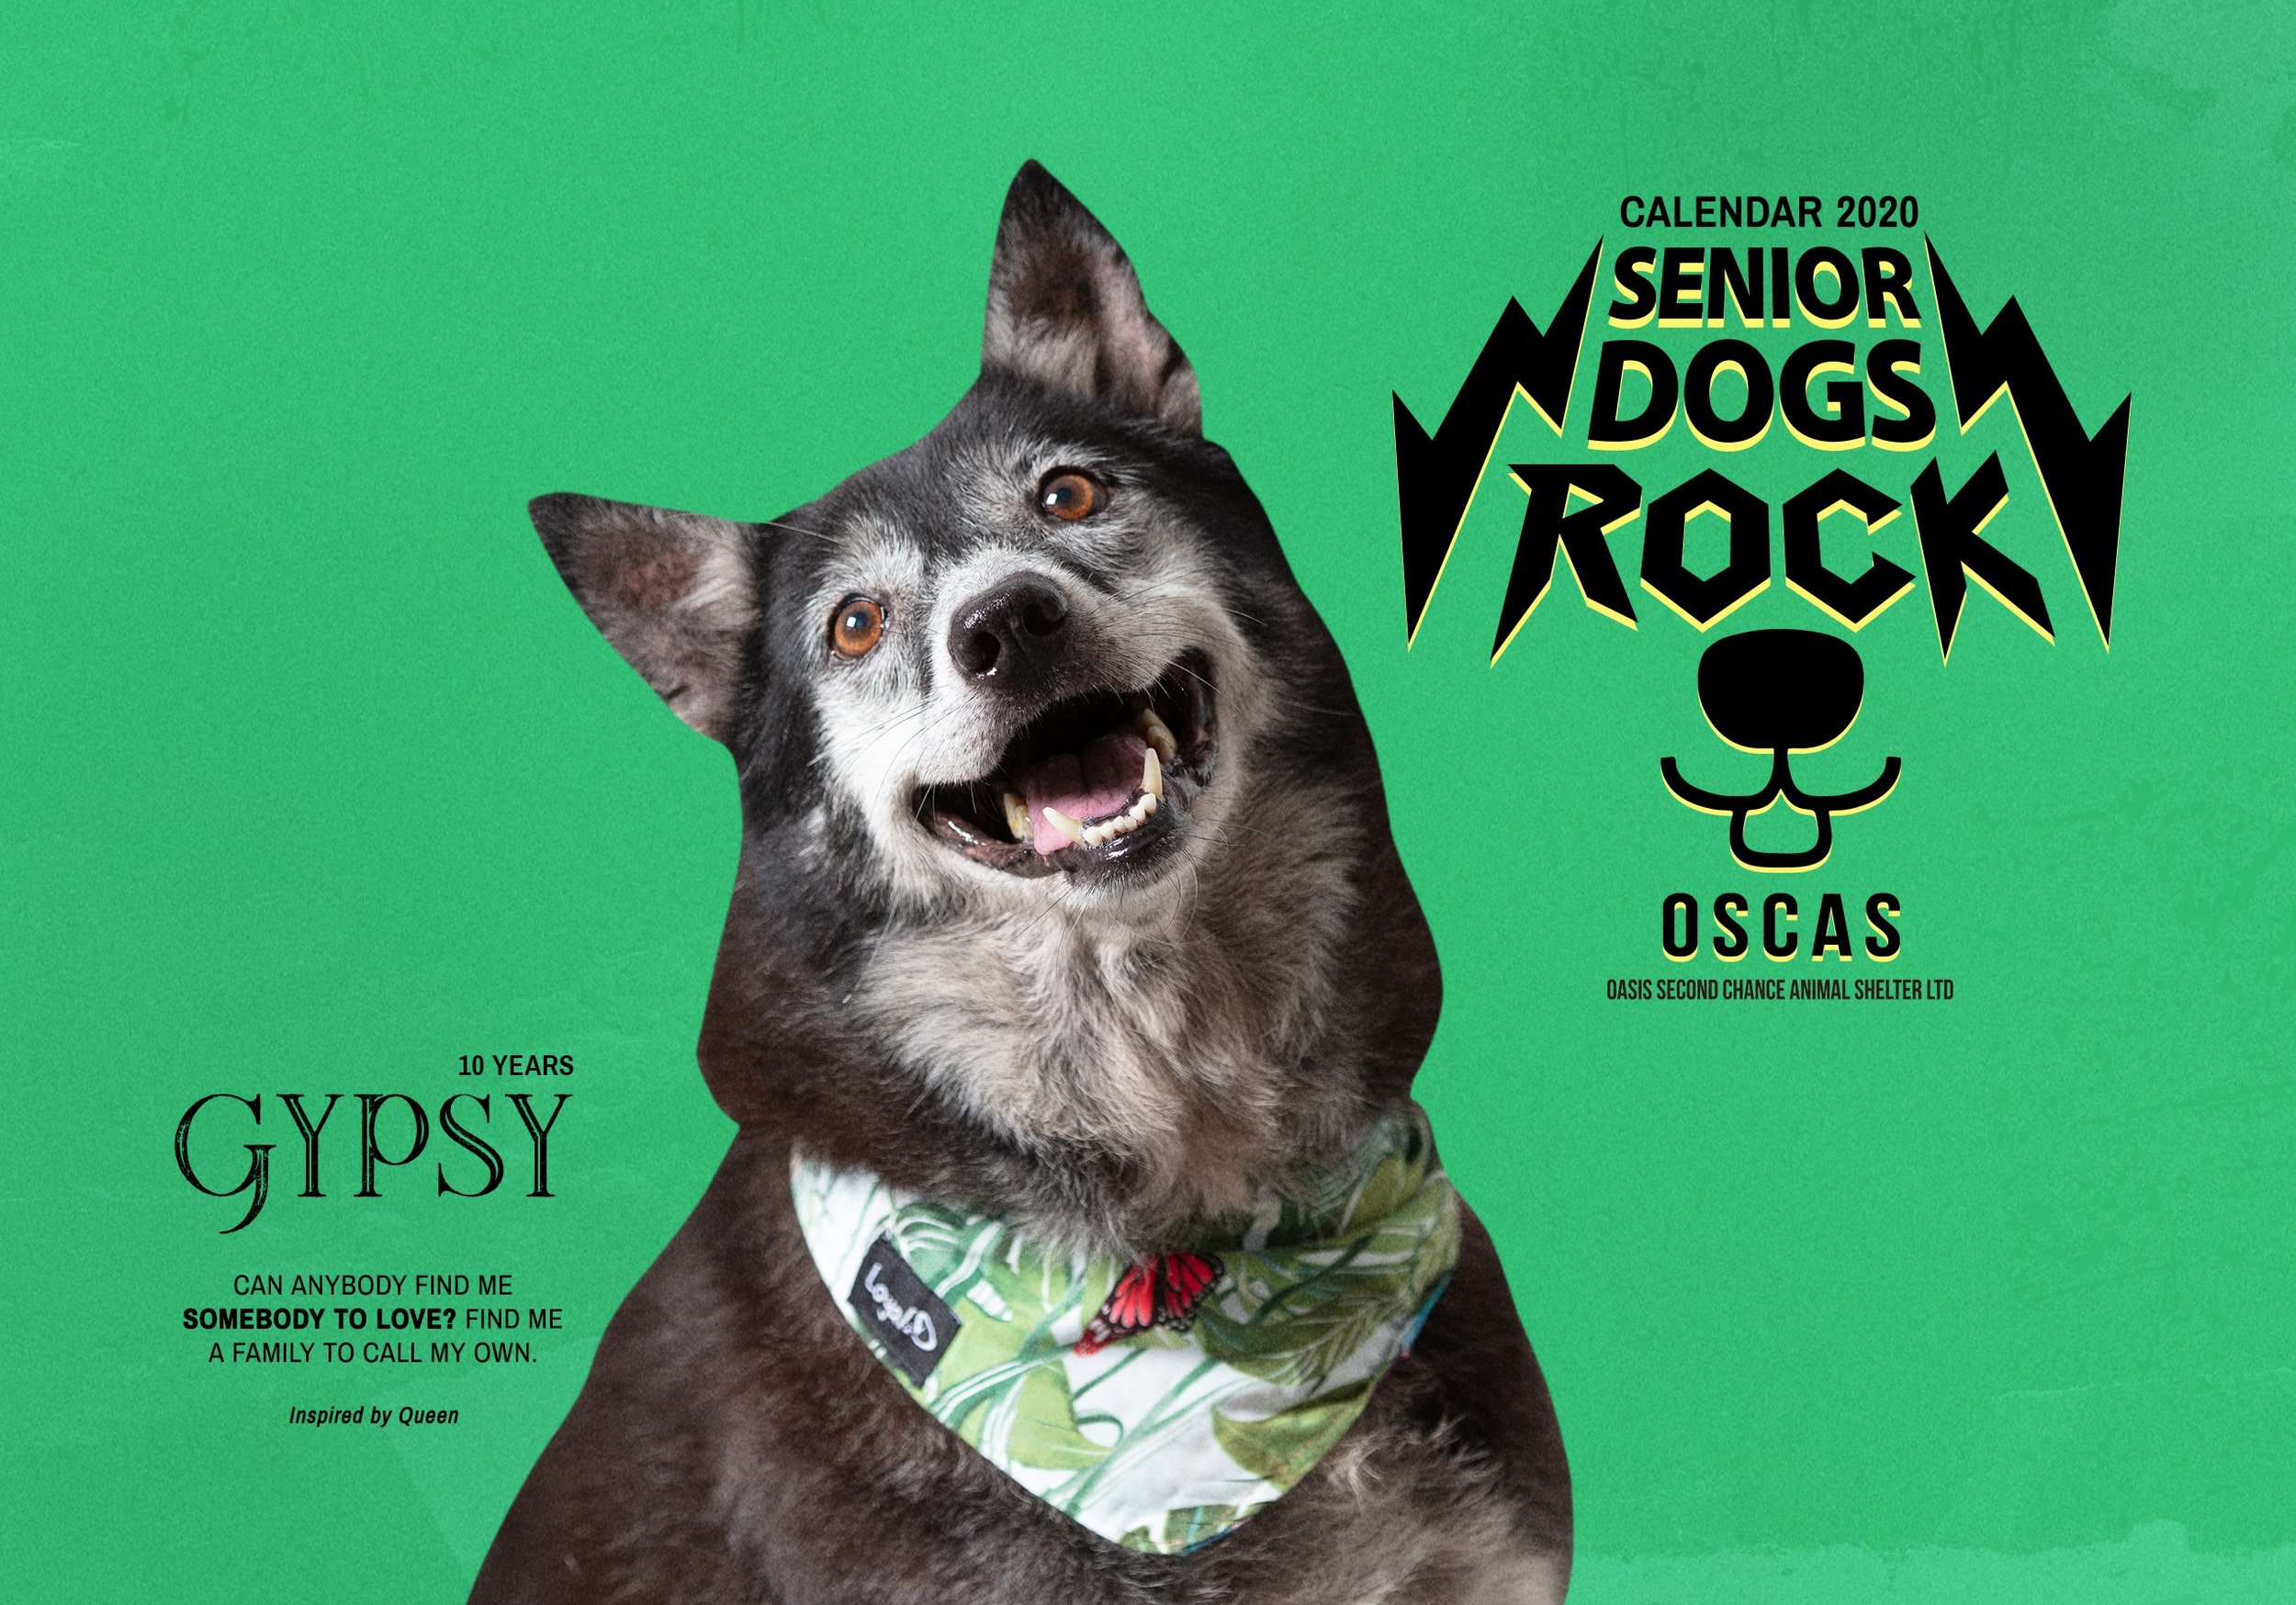 Our beloved Gypsy is the 2020 calendar (album) cover girl!